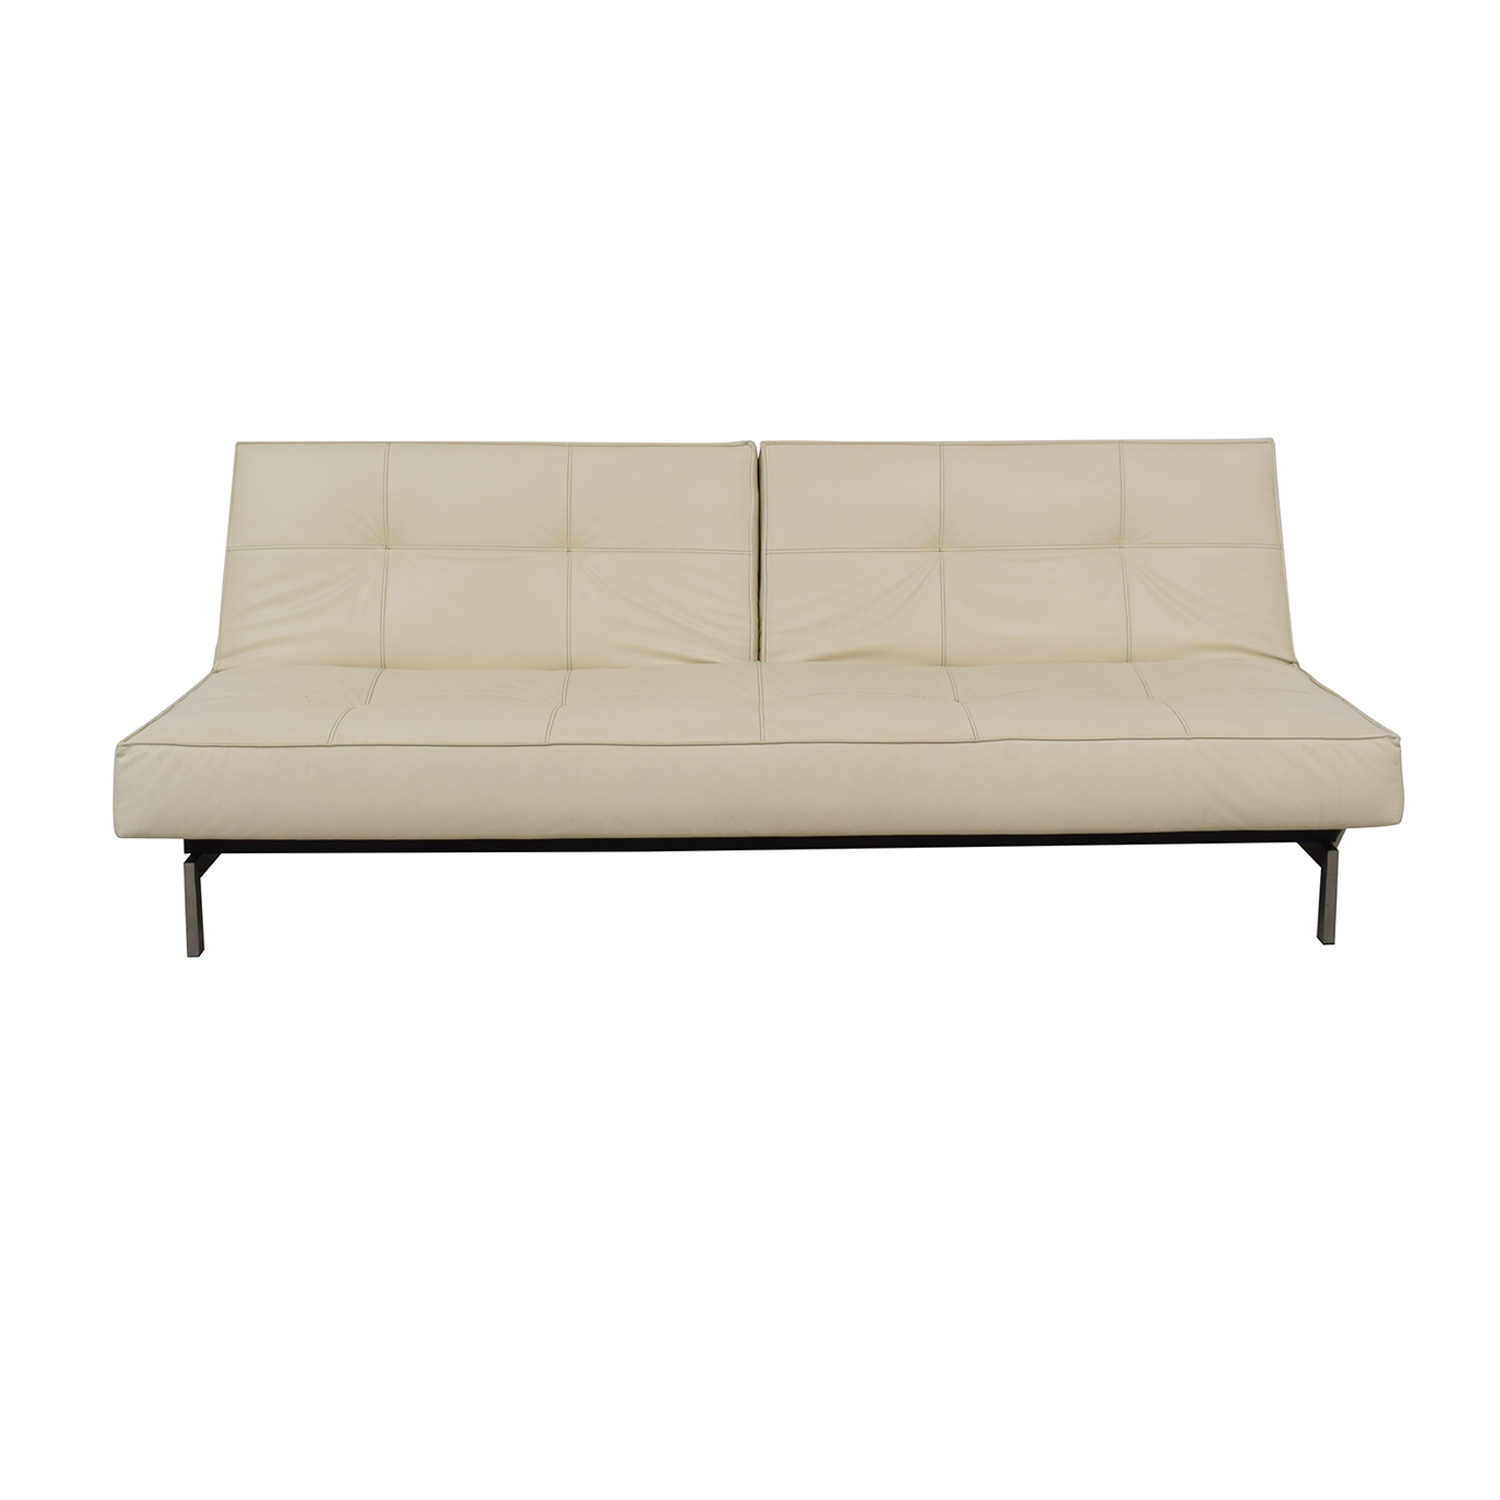 87% OFF - Innovation Living Innovation White Splitback Stainless Steel  Convertible Sofa / Sofas